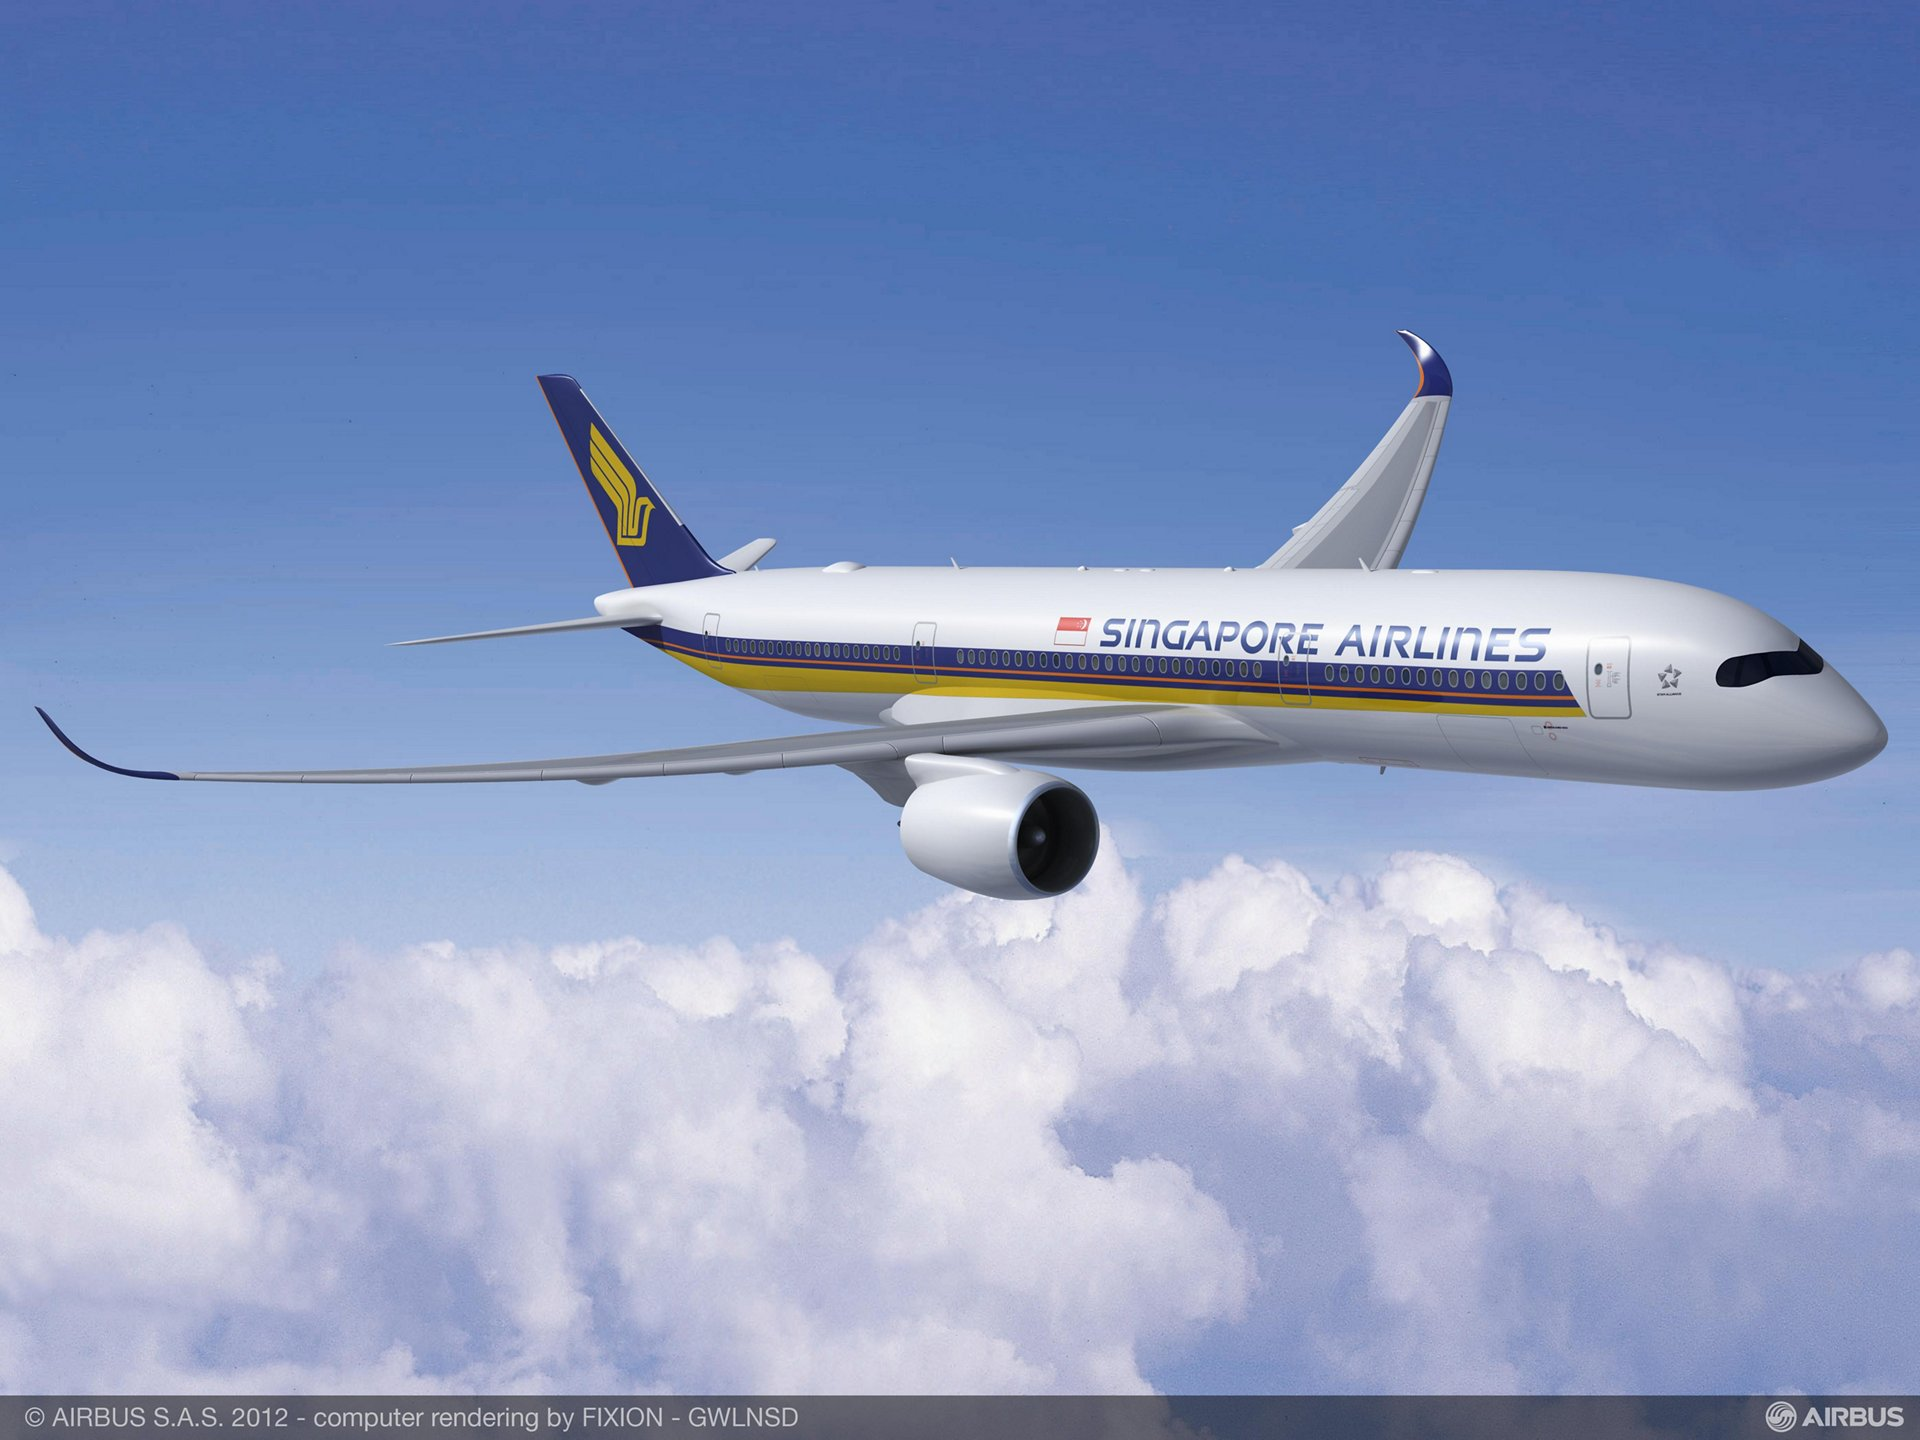 Singapore Airlines increased its A350 XWB order total with a repeat firm booking that includes 20 of these all-new widebody jetliners, along with five double-deck Airbus A380s